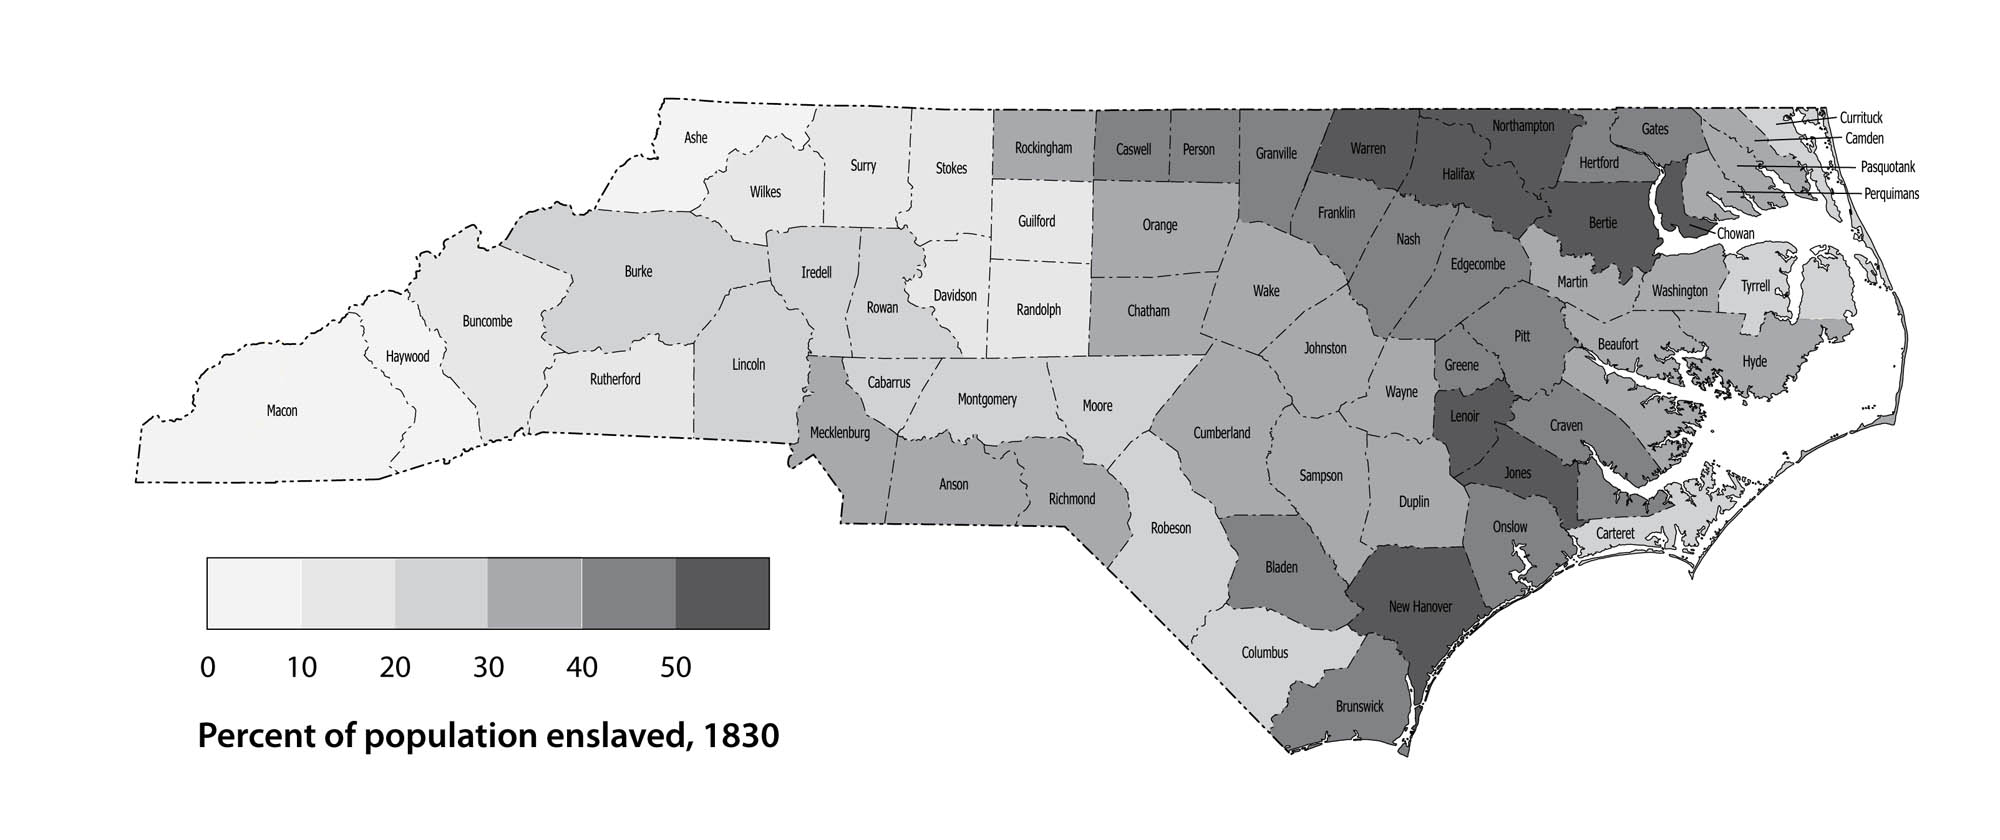 North Carolina population: Percent enslaved by county, 1830